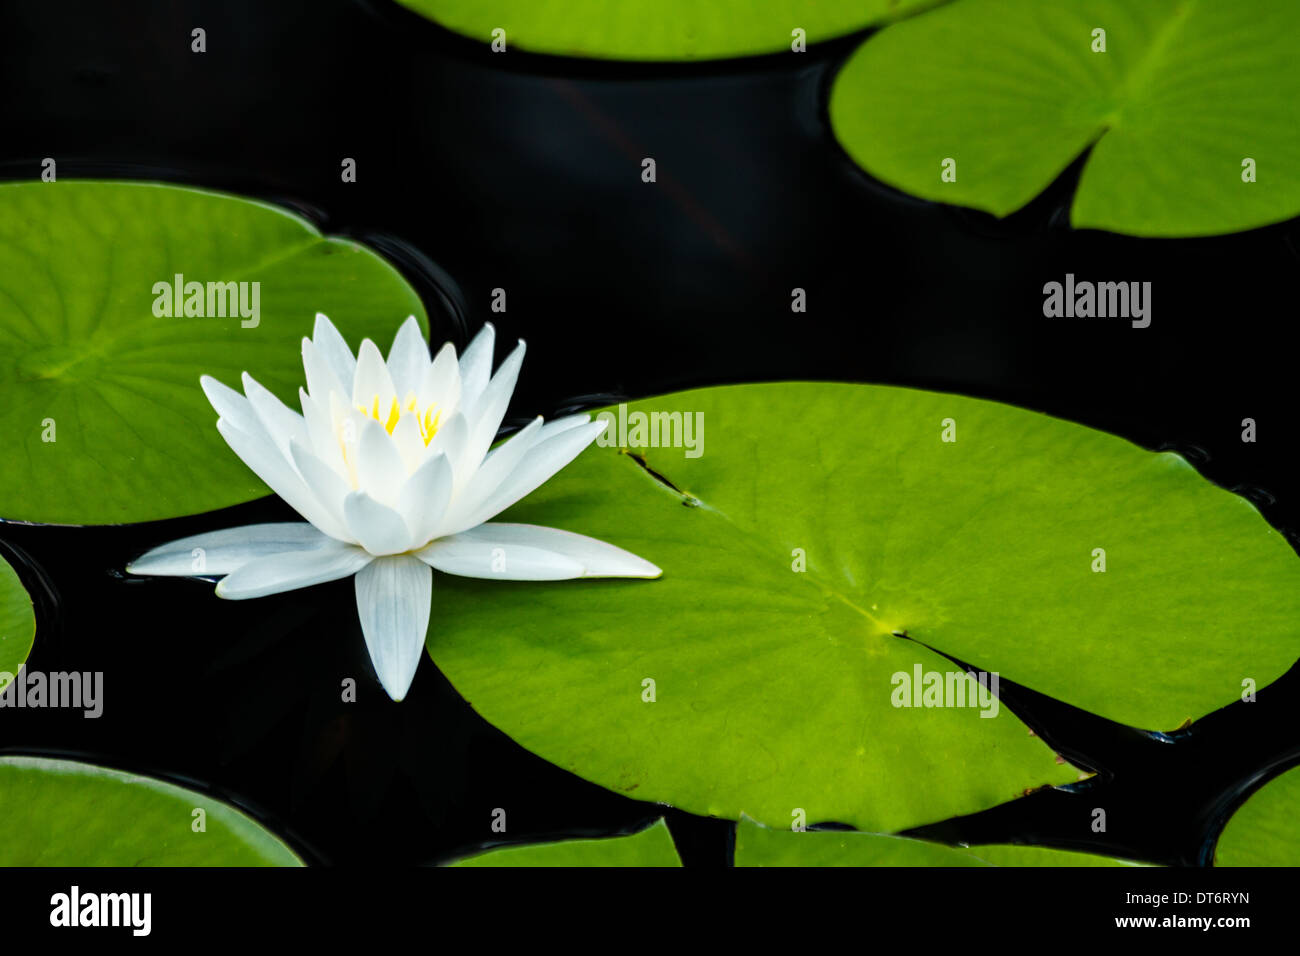 A fragrant water lily (nymphaea odorata) with lily pads. - Stock Image